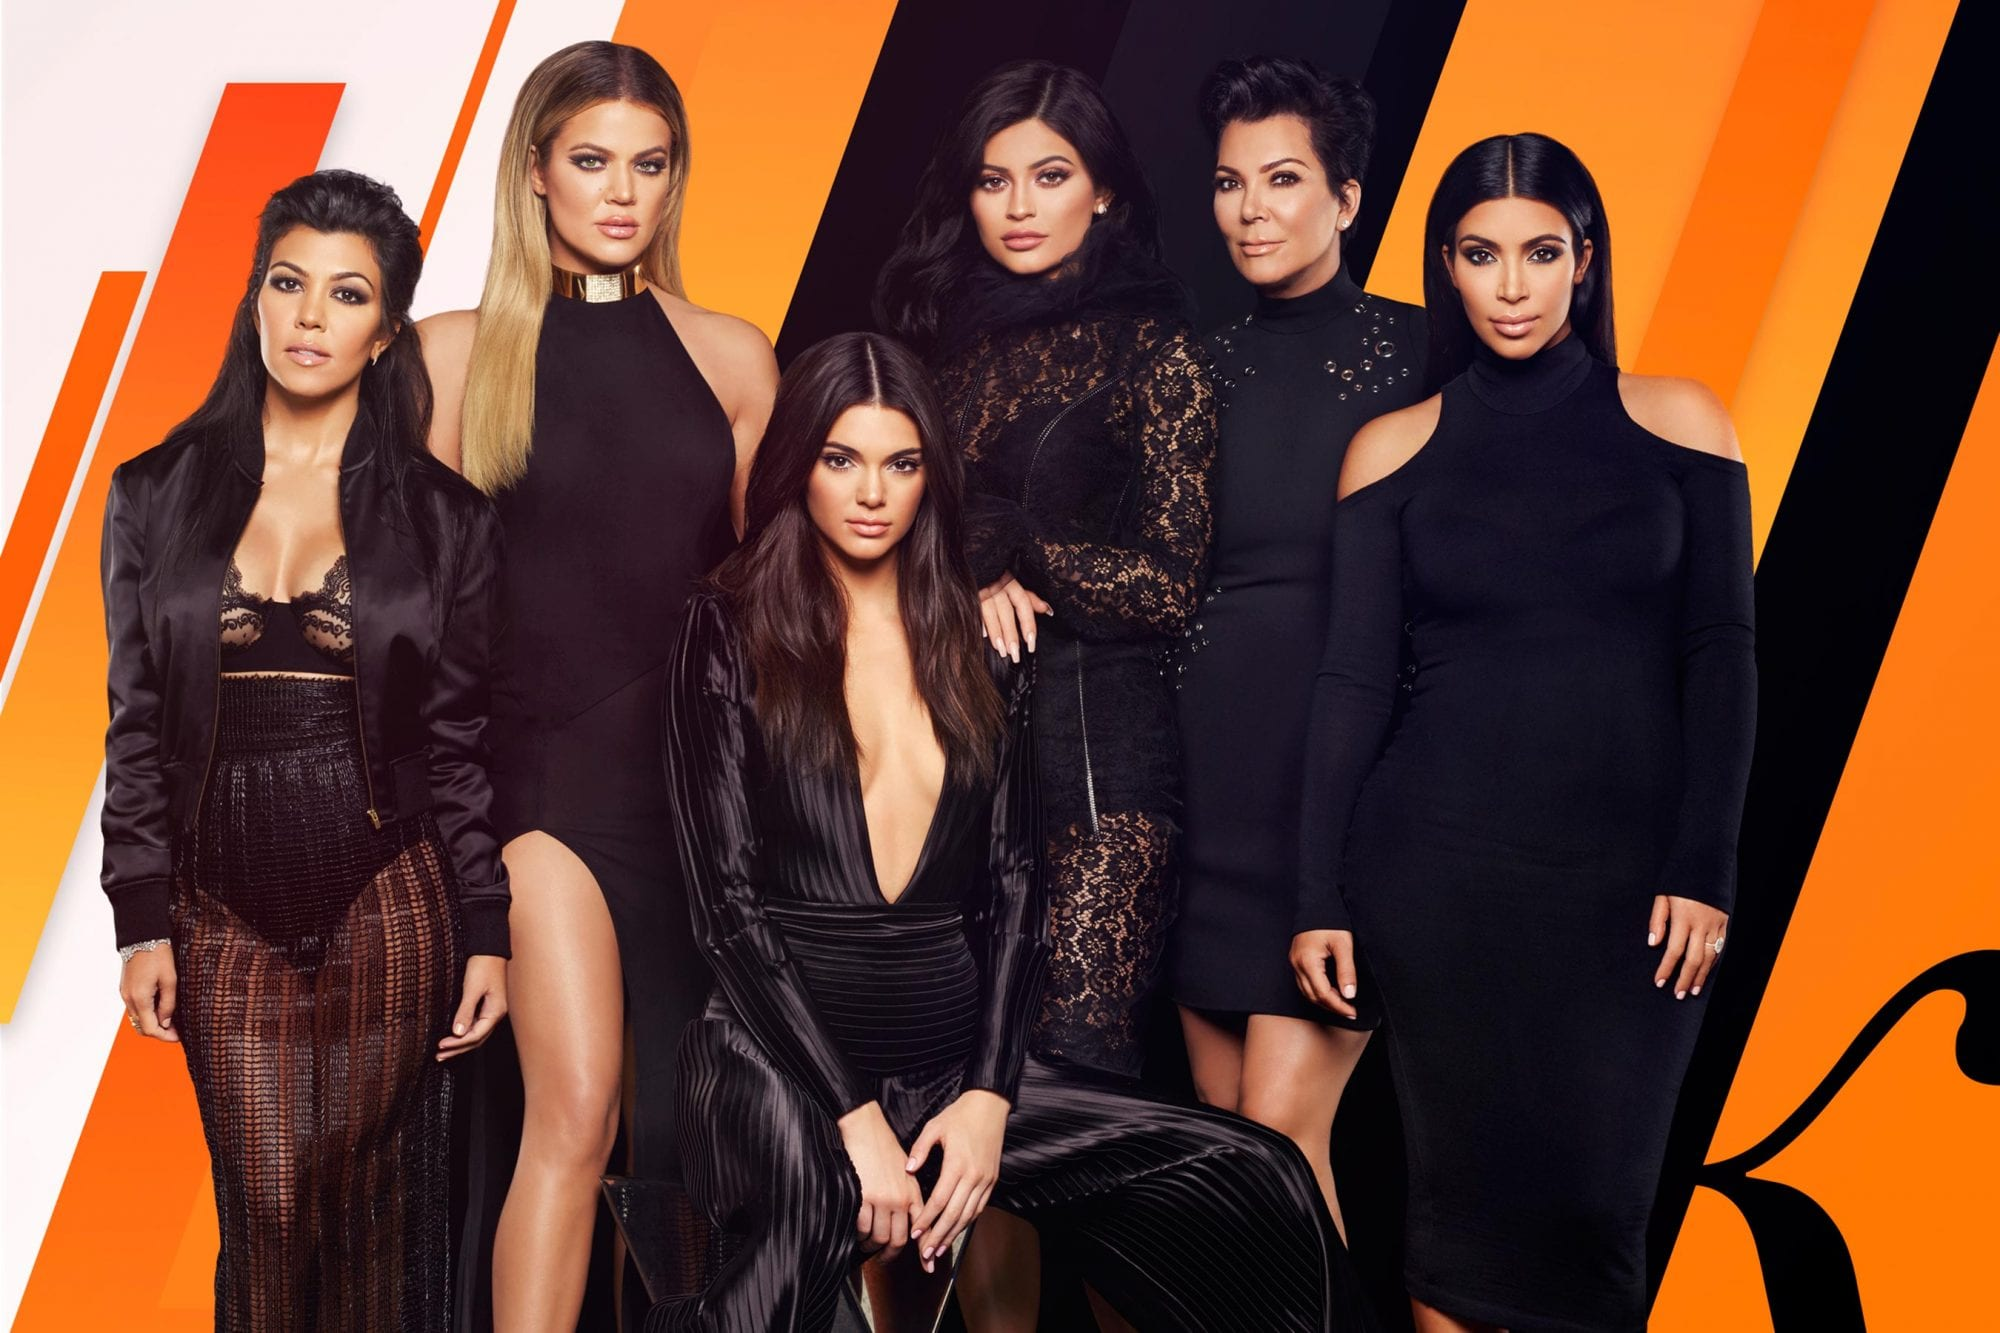 Keeping Up With The Kardashians Season 20 Episode 11 Release Date and Spoilers